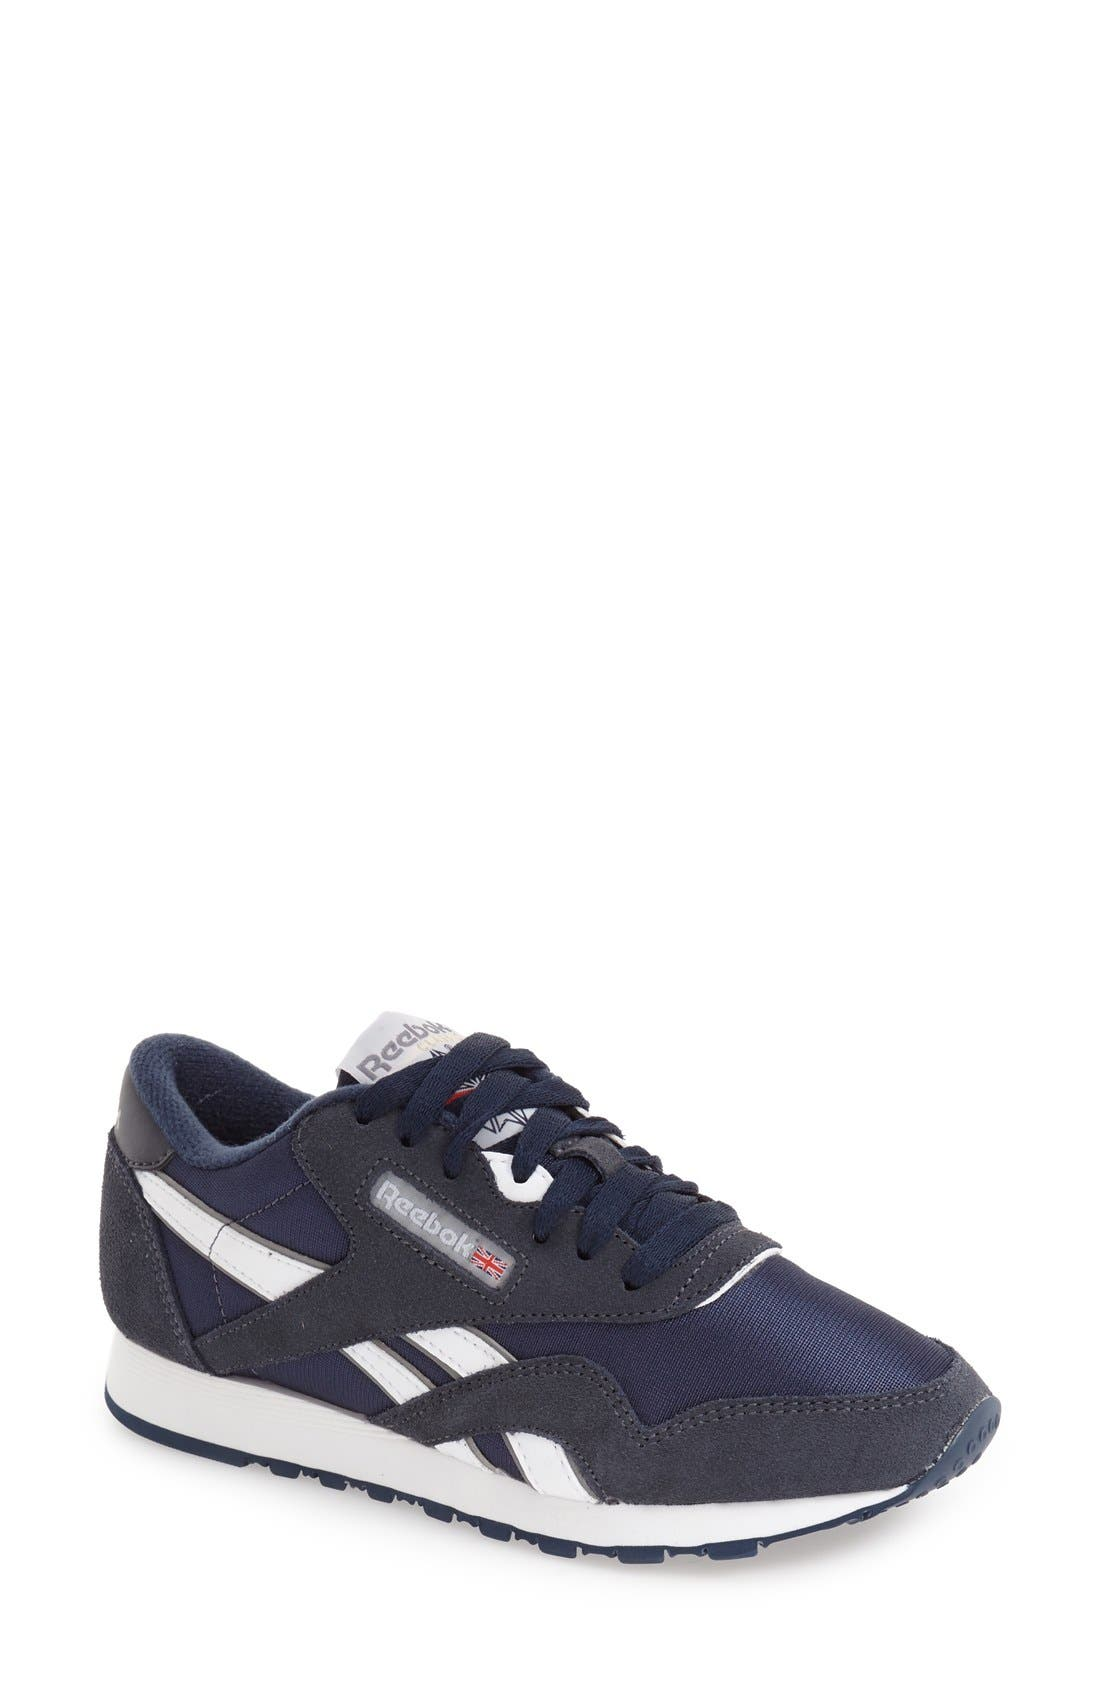 Classic Nylon Sneaker,                             Main thumbnail 1, color,                             Team Navy/ Platinum